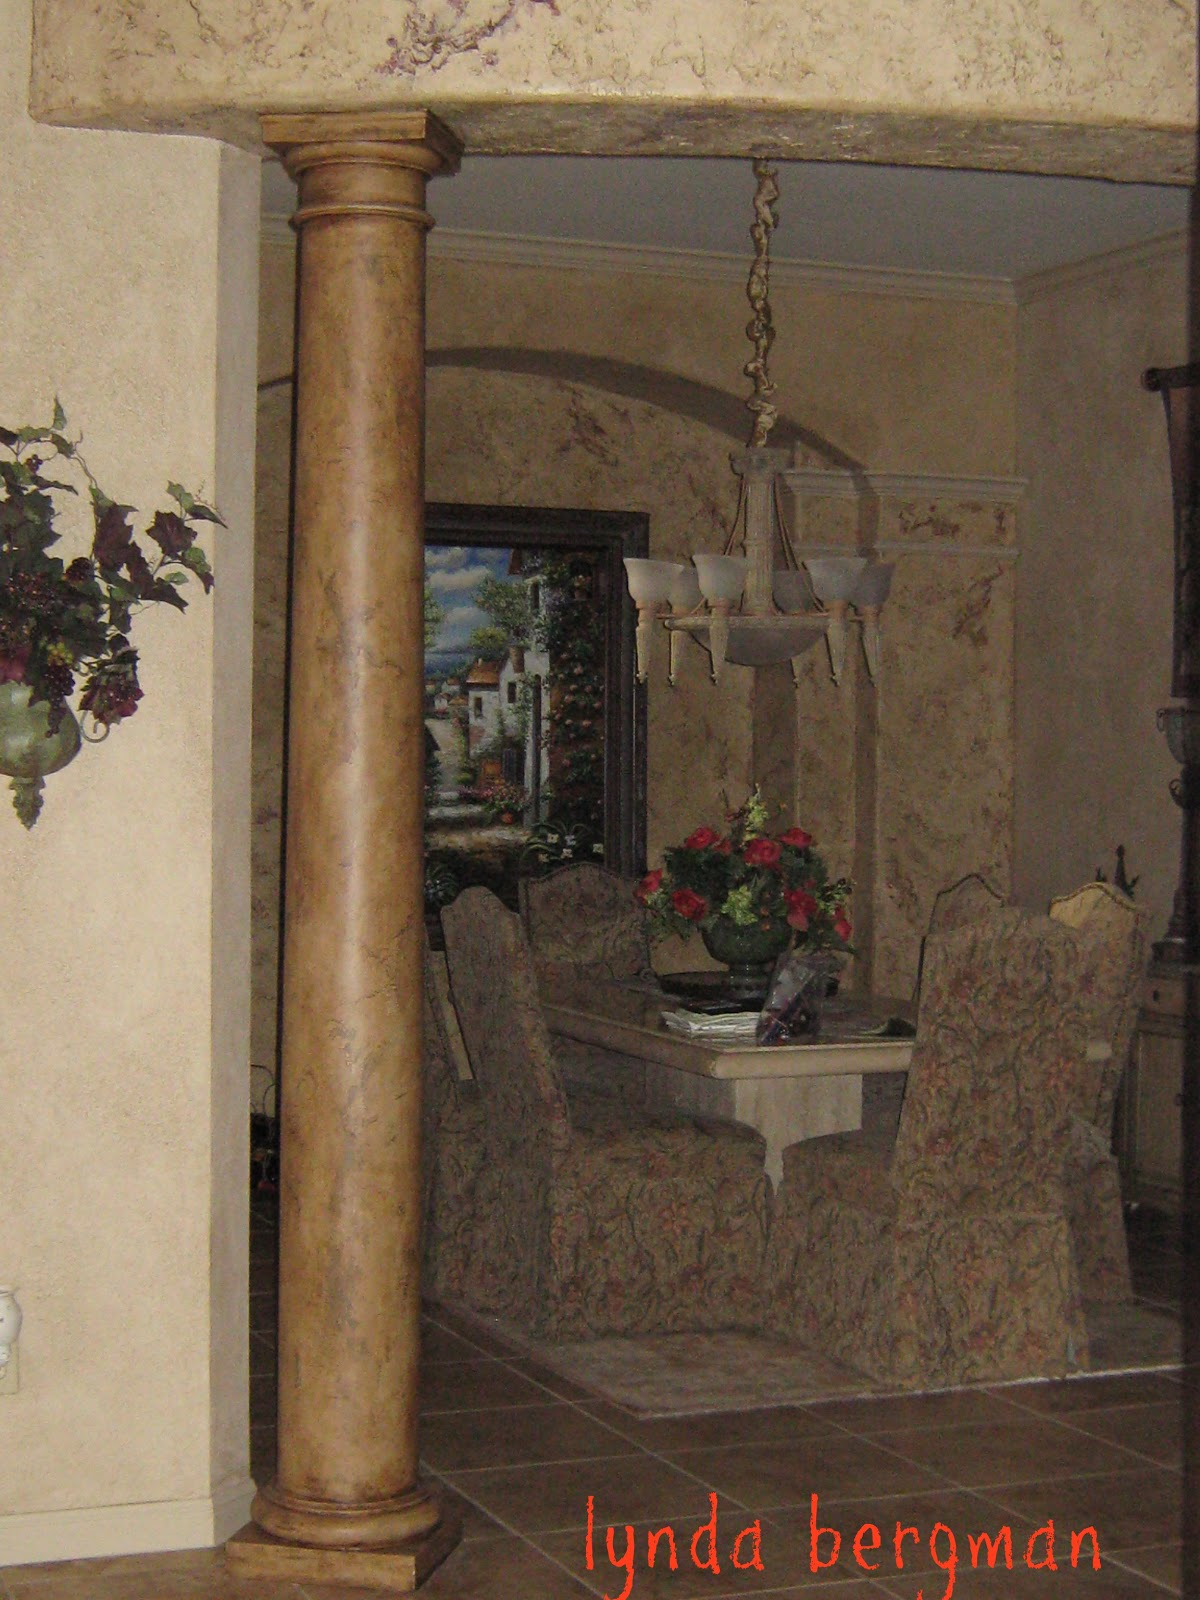 Lynda Bergman Decorative Artisan Painting Columns Mantel From White To Look Like Wood Old